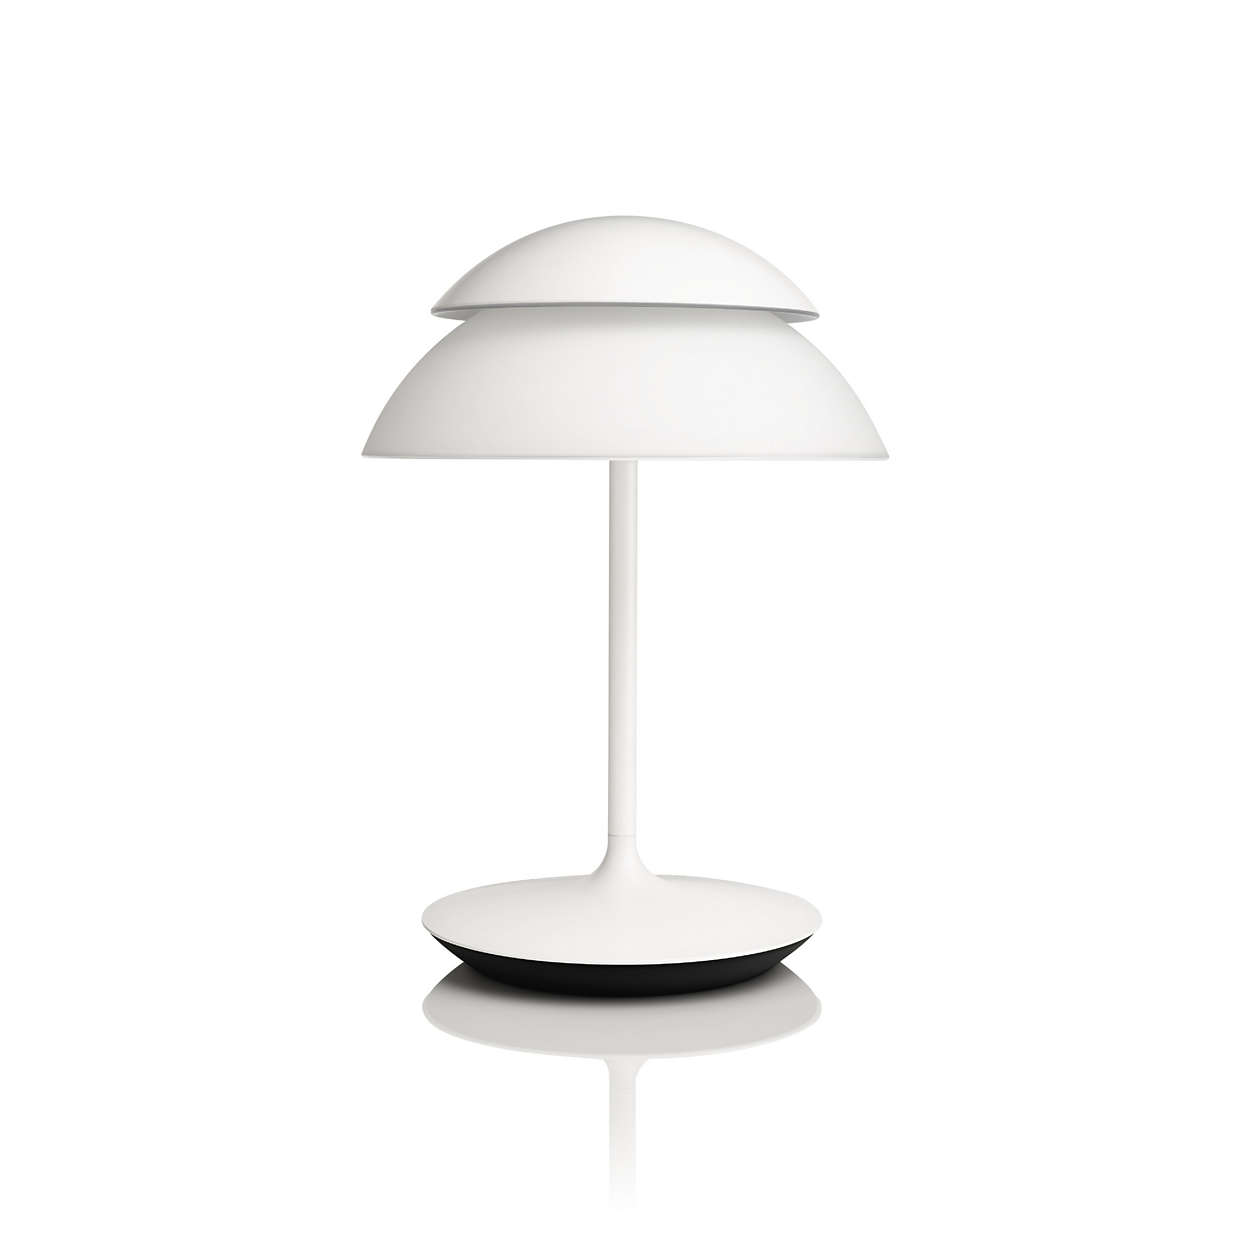 Hue white and color ambiance beyond table lamp 712023148 philips limitless possibilites aloadofball Image collections